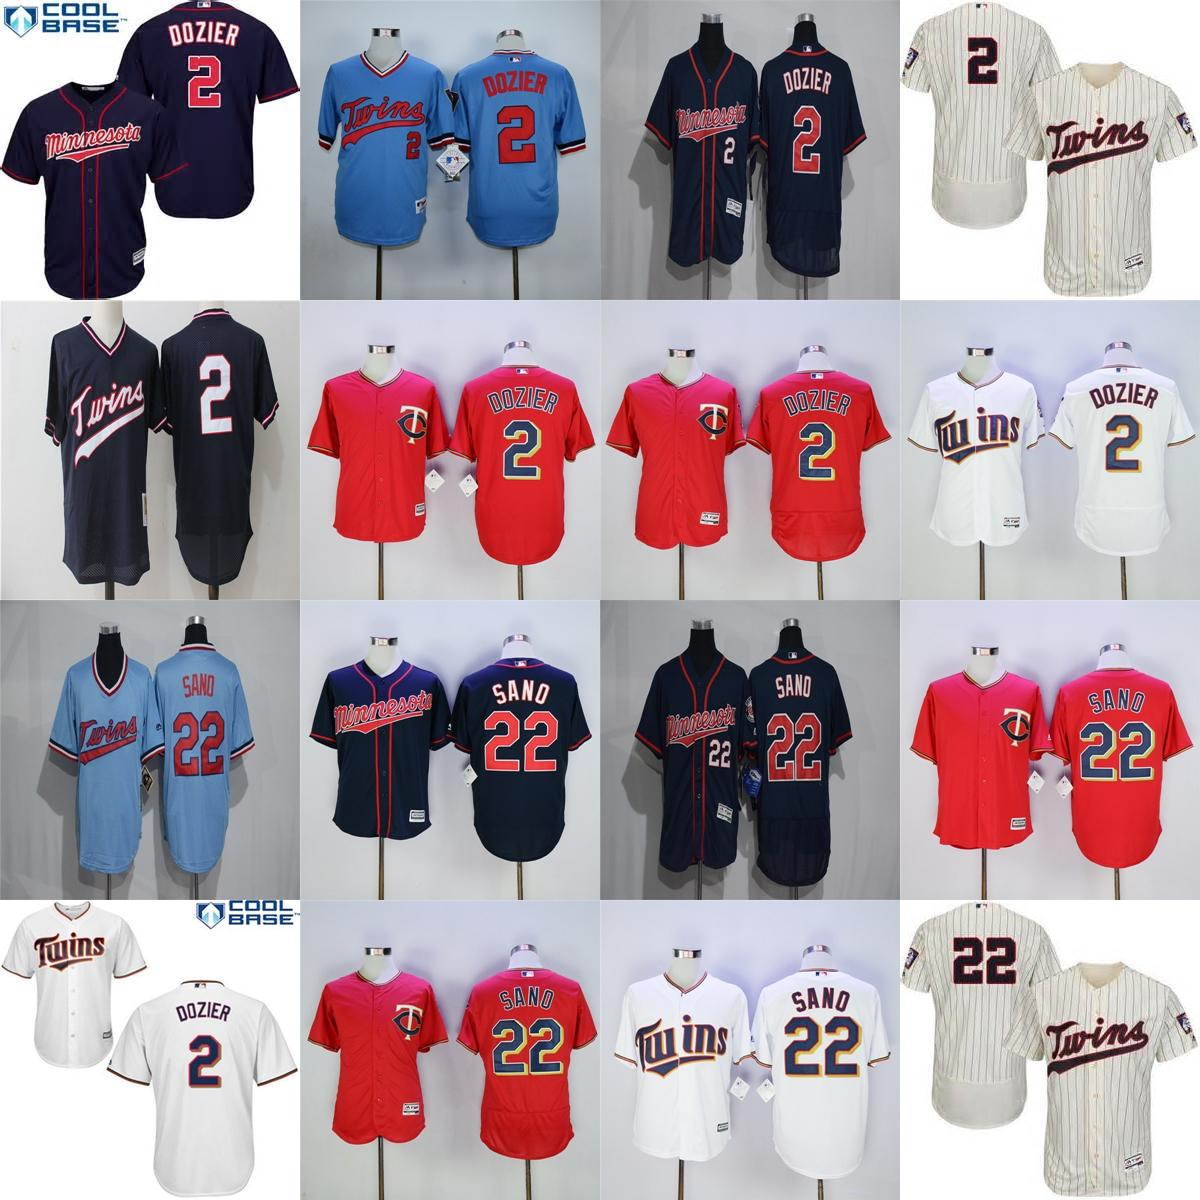 jersey 2017 wholesale mens womens youth minnesota twins 2 brian dozier 22 miguel sano white red blue